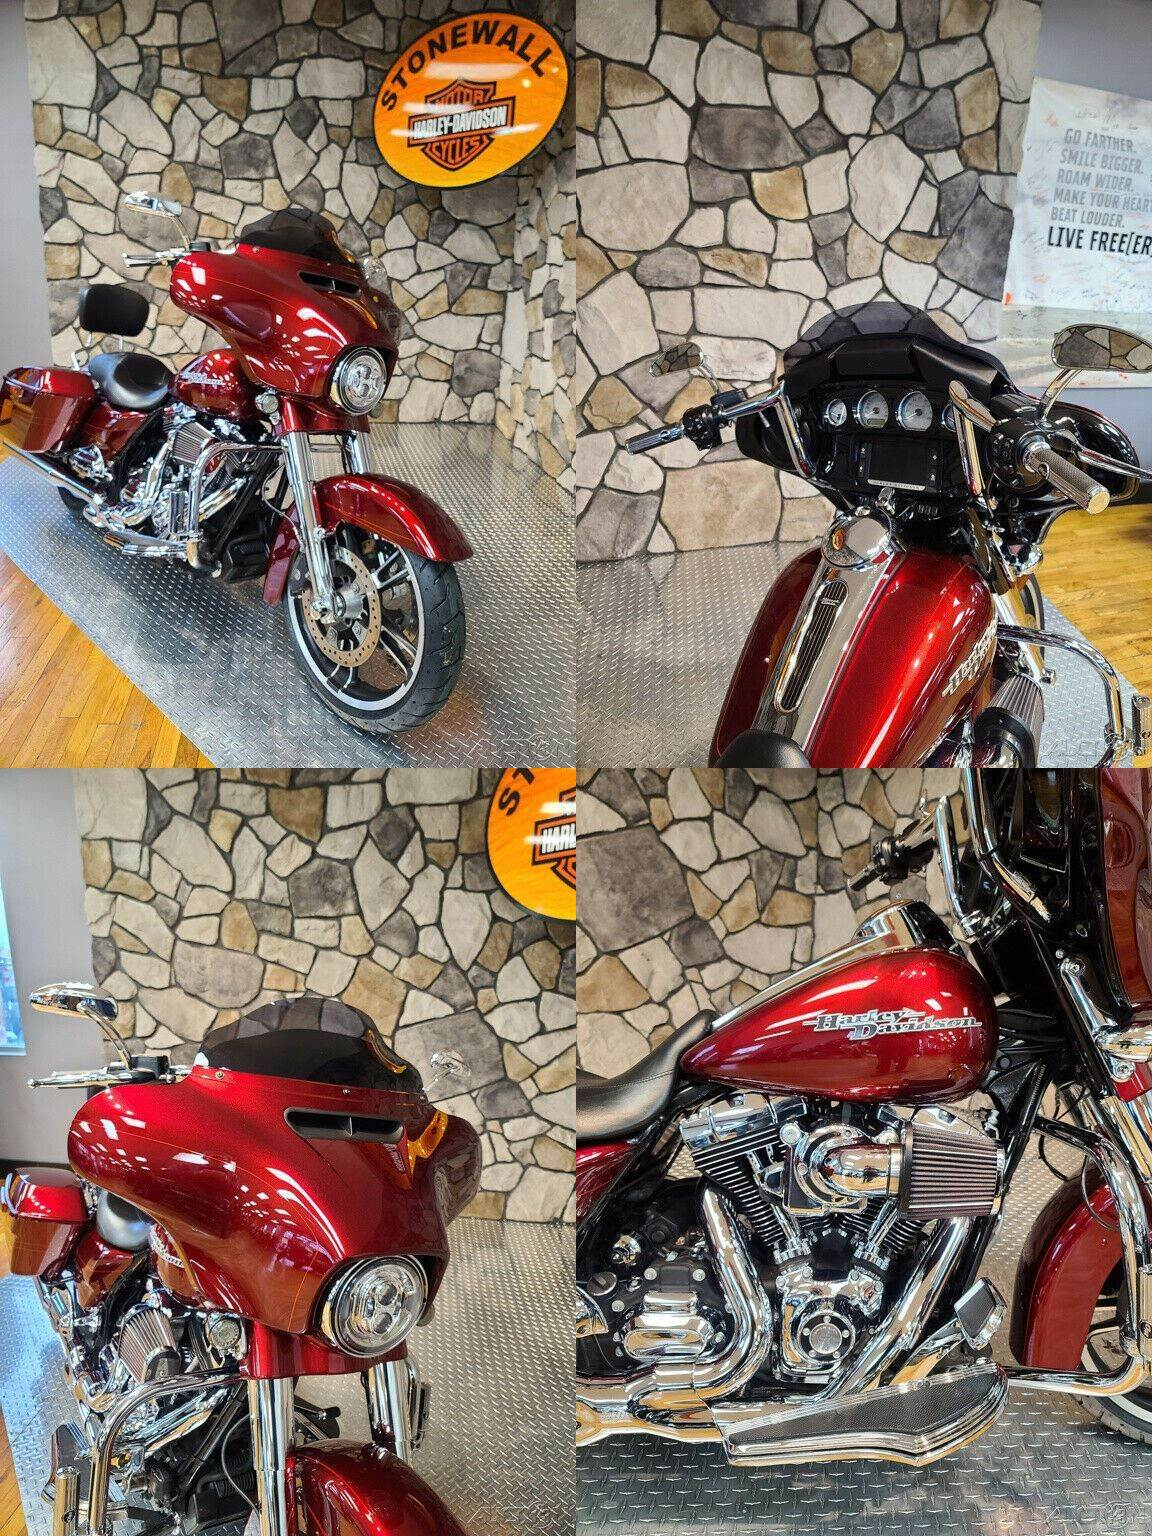 2016 Harley-Davidson Touring Special Velocity Red Sunglo used for sale near me